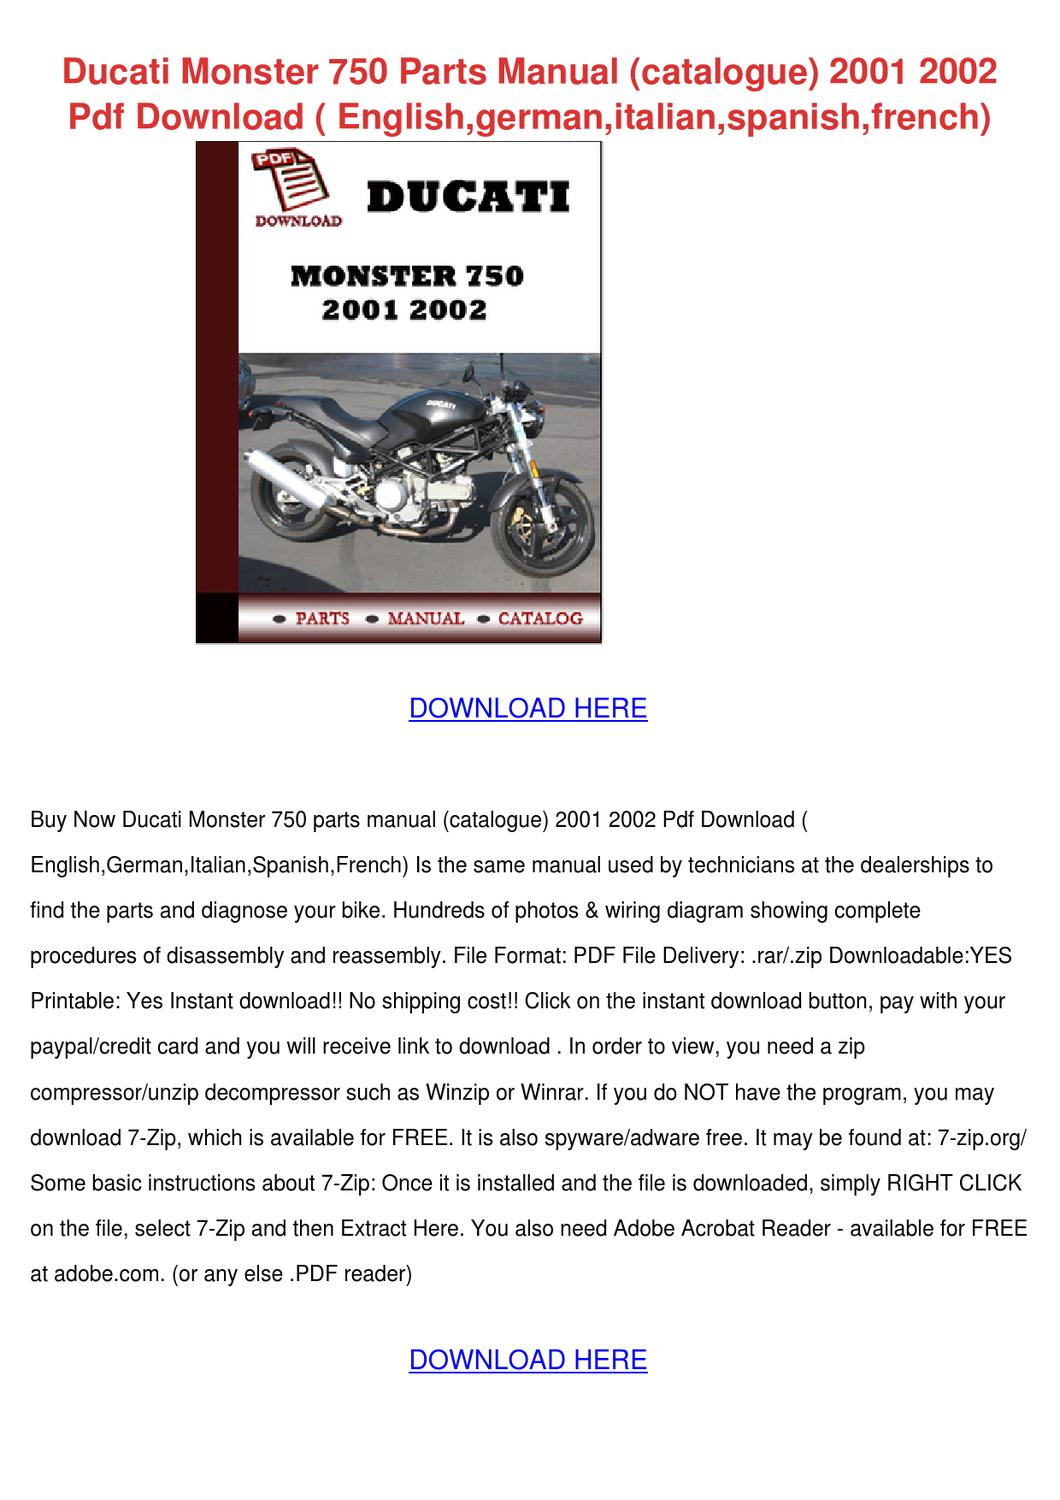 2002 Gsxr 1000 Wiring Diagram Ducati Monster 750 Service Manual Schematic Diagrams Parts Catalogue 200 By Maxie Chomka Issuu